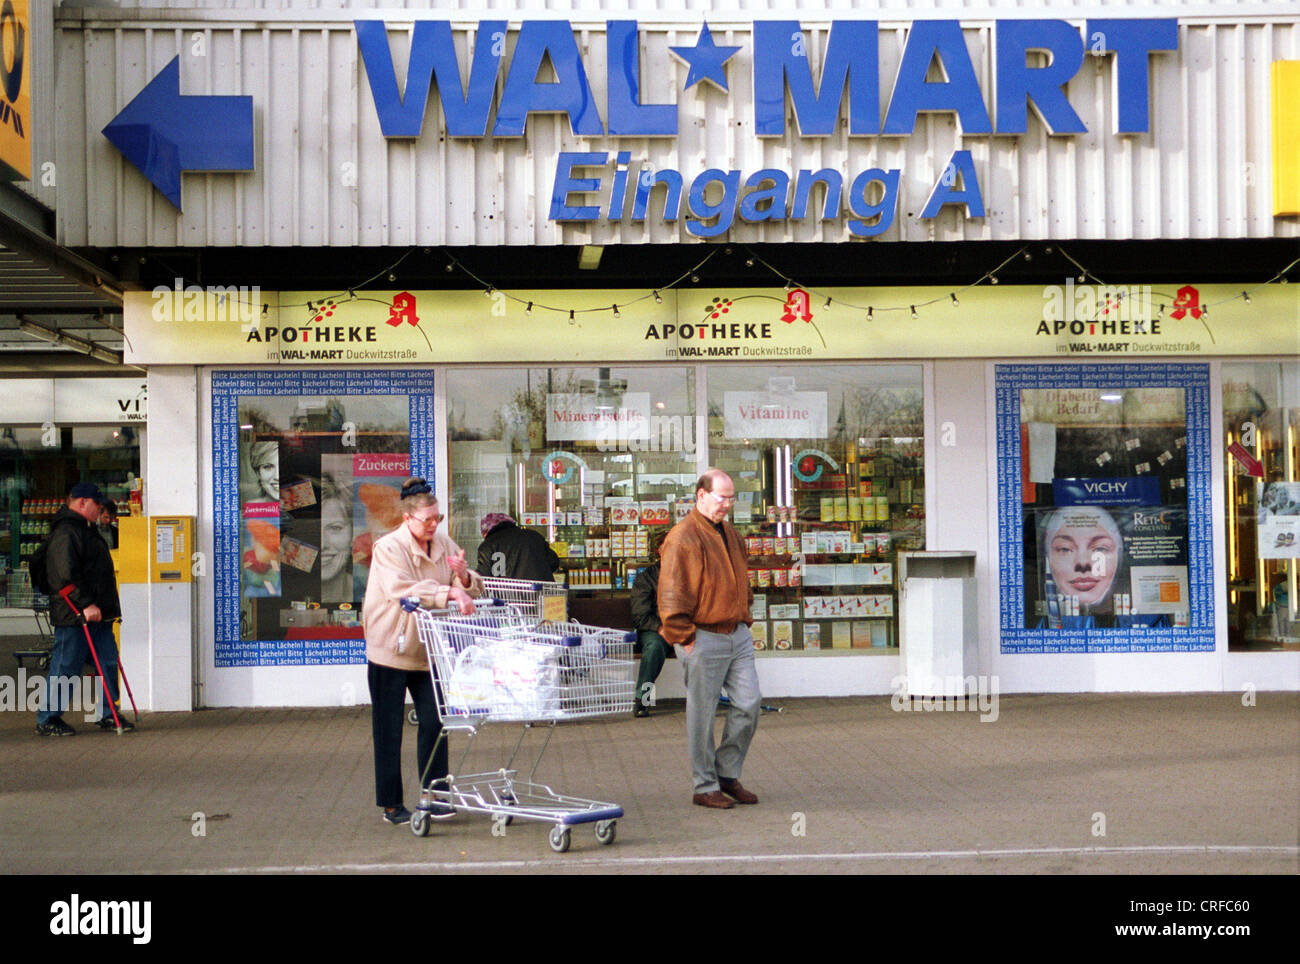 walmart germany Why didnt it appeal to germans why did it lose to competitors i'm not pro-walmart by the way, this is for a business class project thanks.